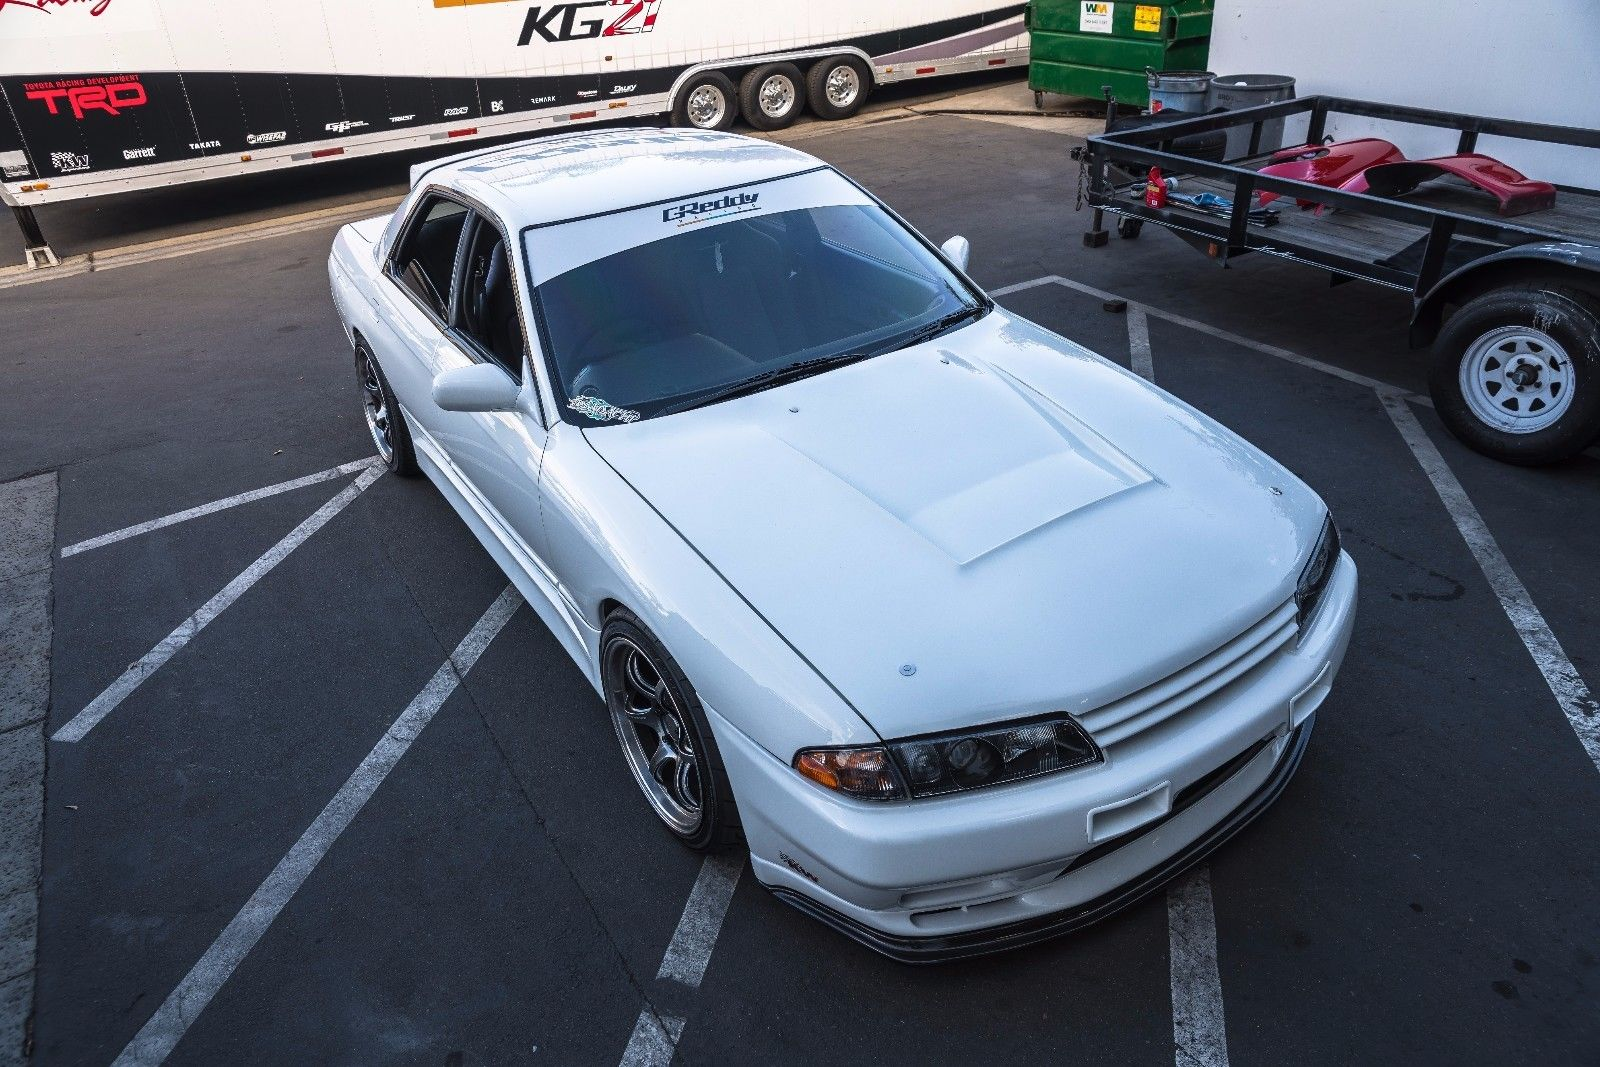 For Sale 1989 Skyline Sedan With A Rb26dett Inline Six Engine 300zx Fuel Filter Removal The System Is Built To Handle E85 And Current Owner Estimates Will Make 600 Horsepower On Full Specs Below